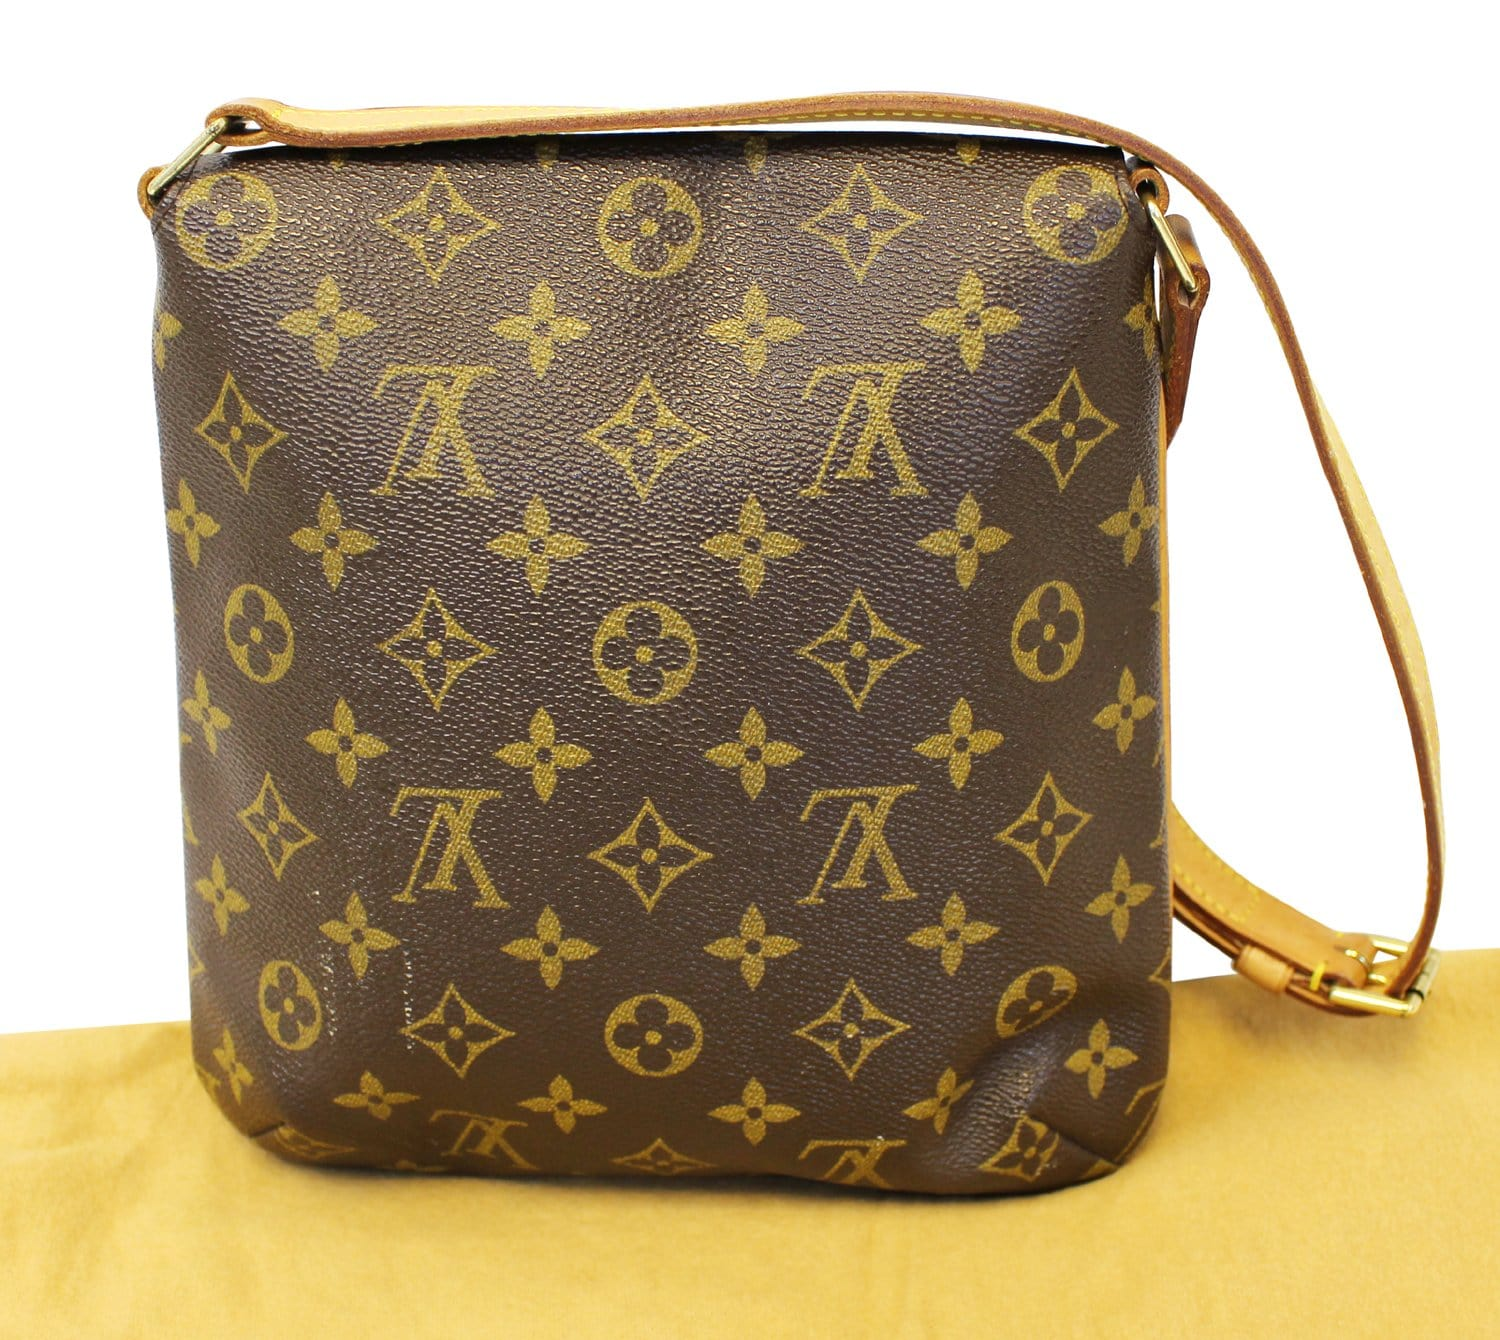 08a8166718715 LOUIS VUITTON Monogram Canvas Musette Salsa Short Strap Shoulder Bag ...